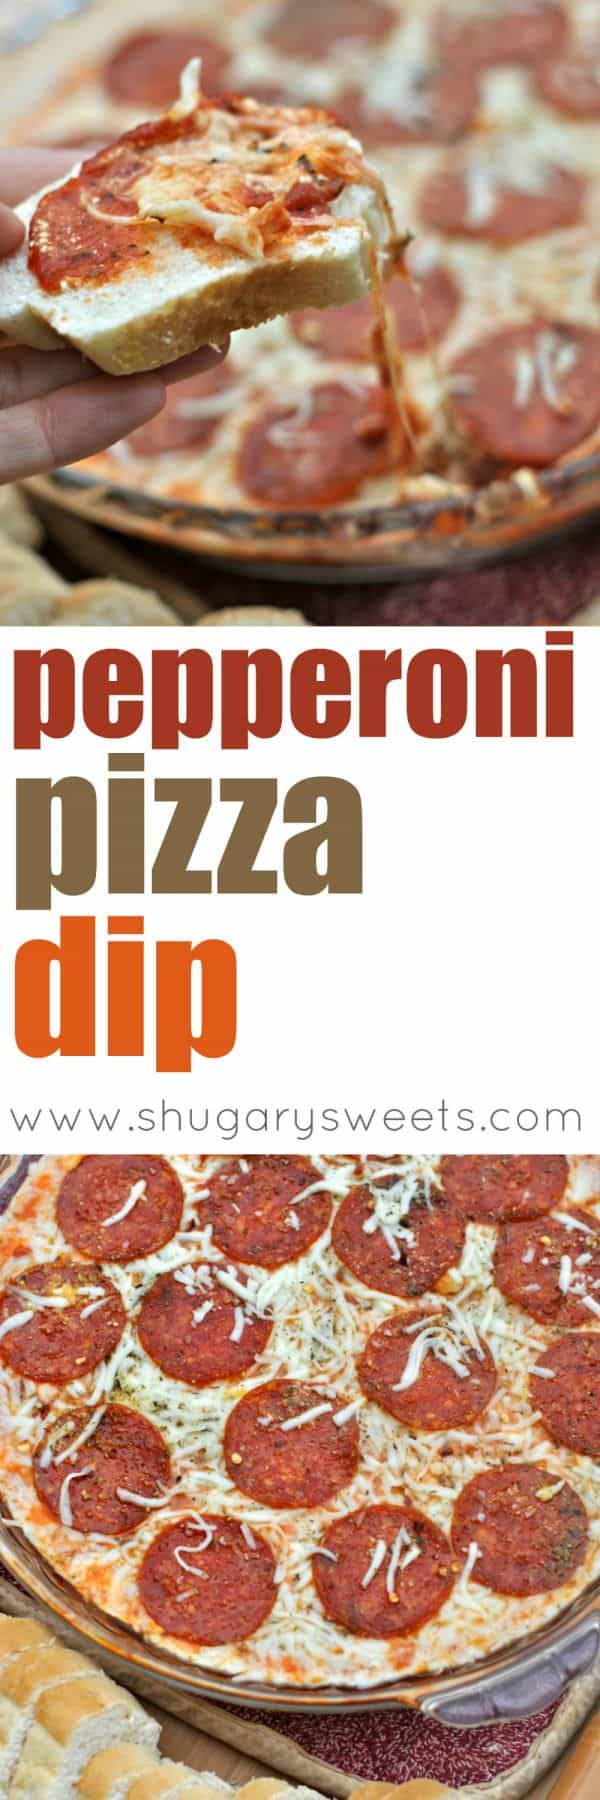 Easy Pepperoni Pizza Dip for game day snacking!